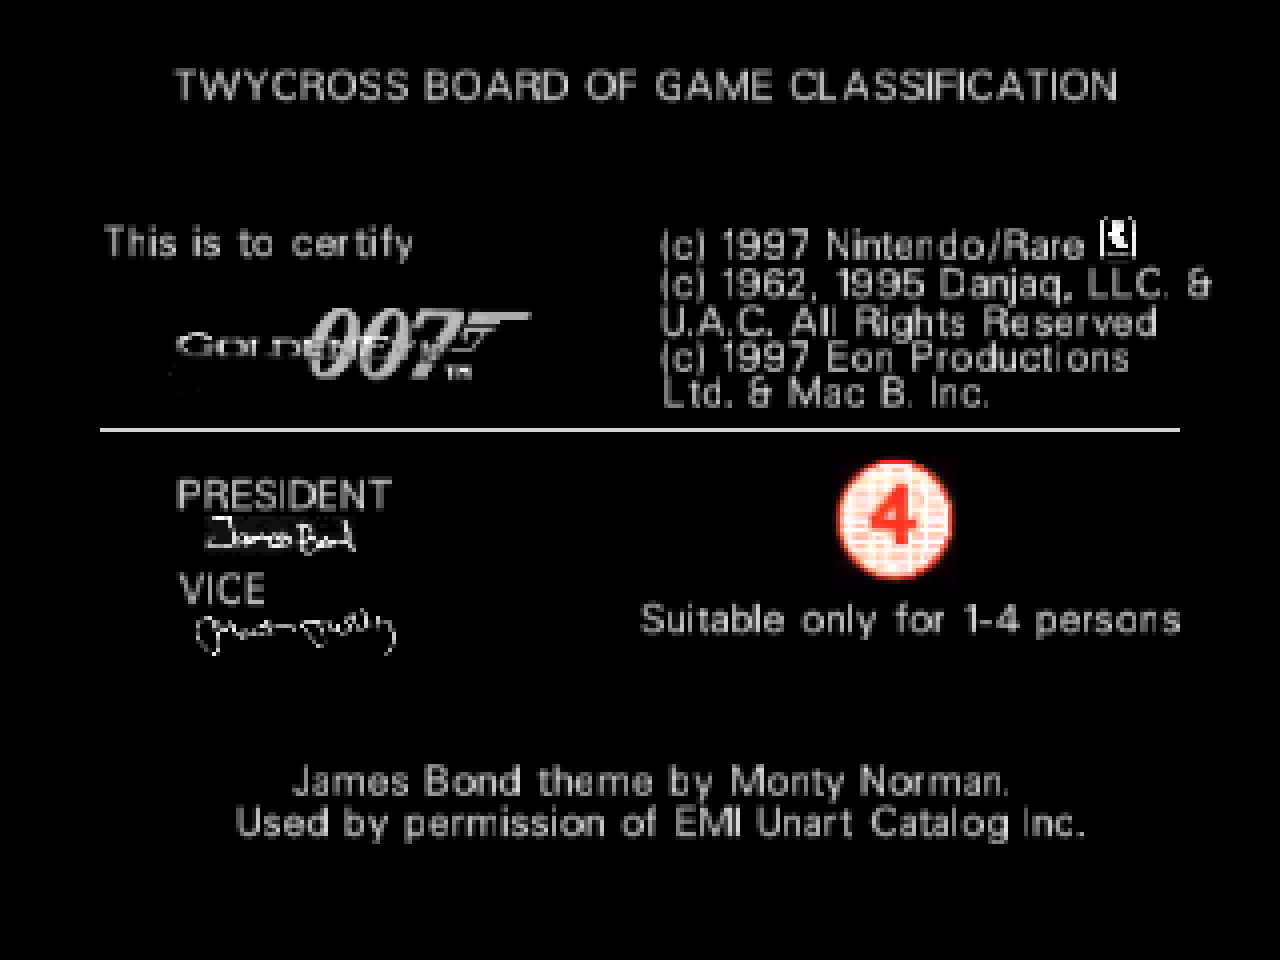 https://s3.eu-west-3.amazonaws.com/games.anthony-dessalles.com/GoldenEye 007 N64 2020 - Screenshots/GoldenEye 007-201118-172904.png